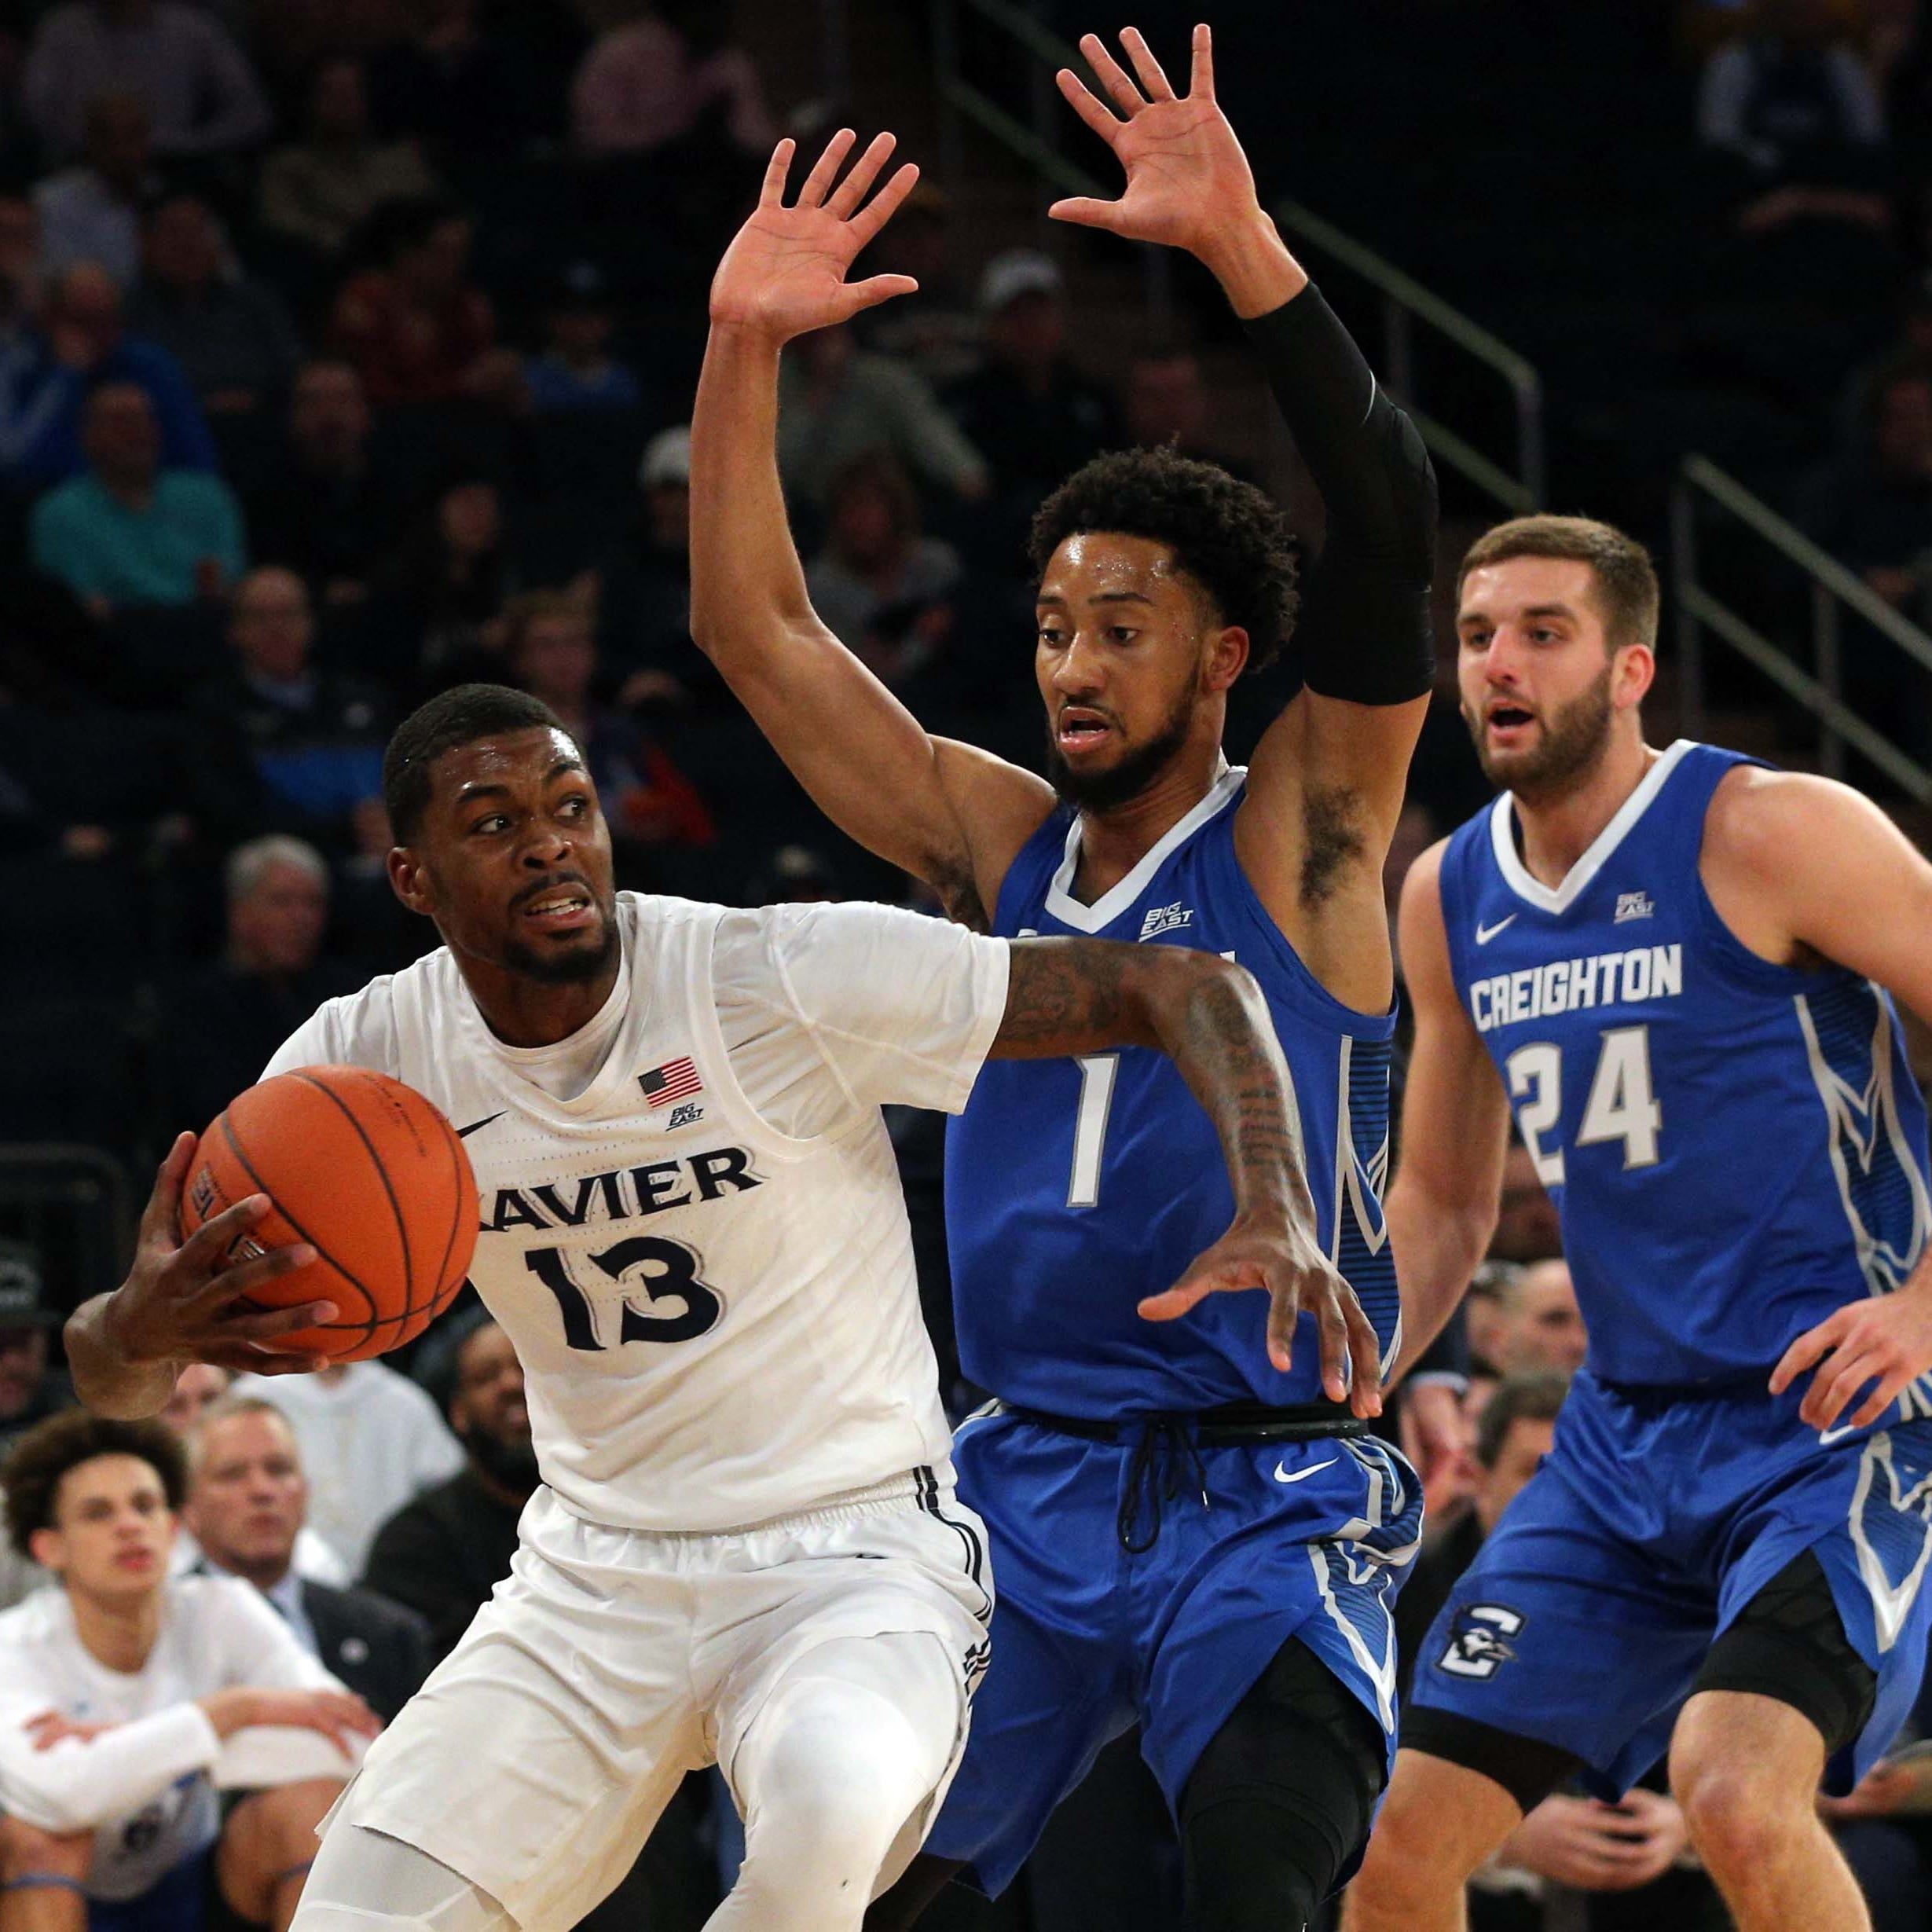 Xavier beats Creighton in the final minute to advance in the Big East Tournament